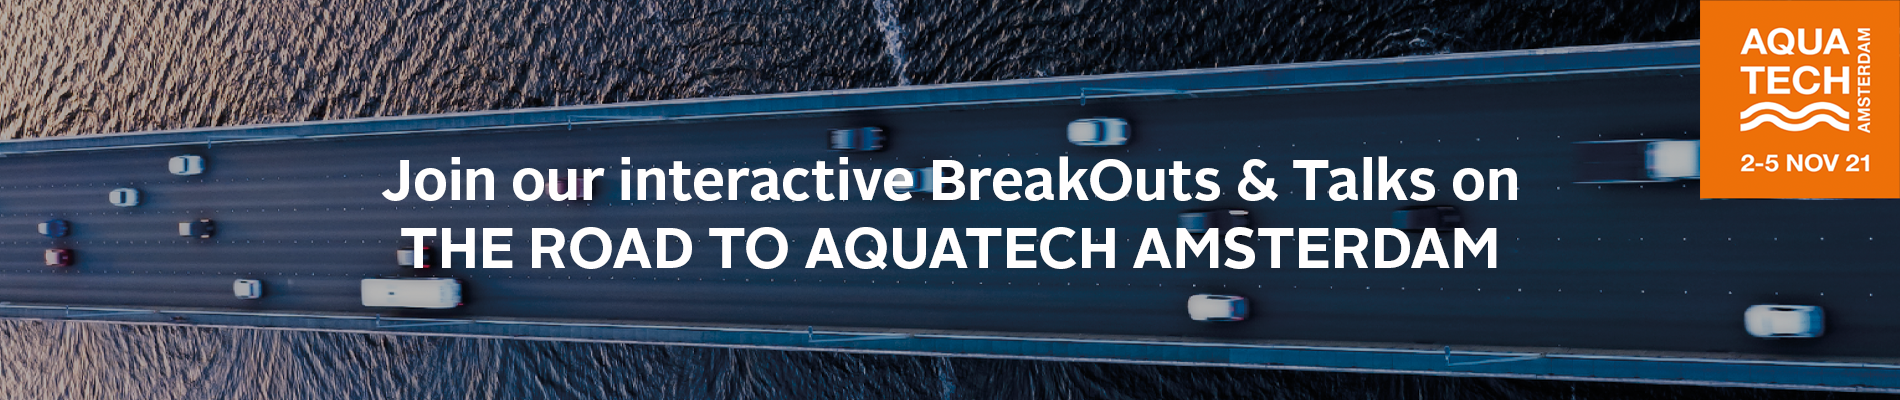 The Road to Aquatech Amsterdam